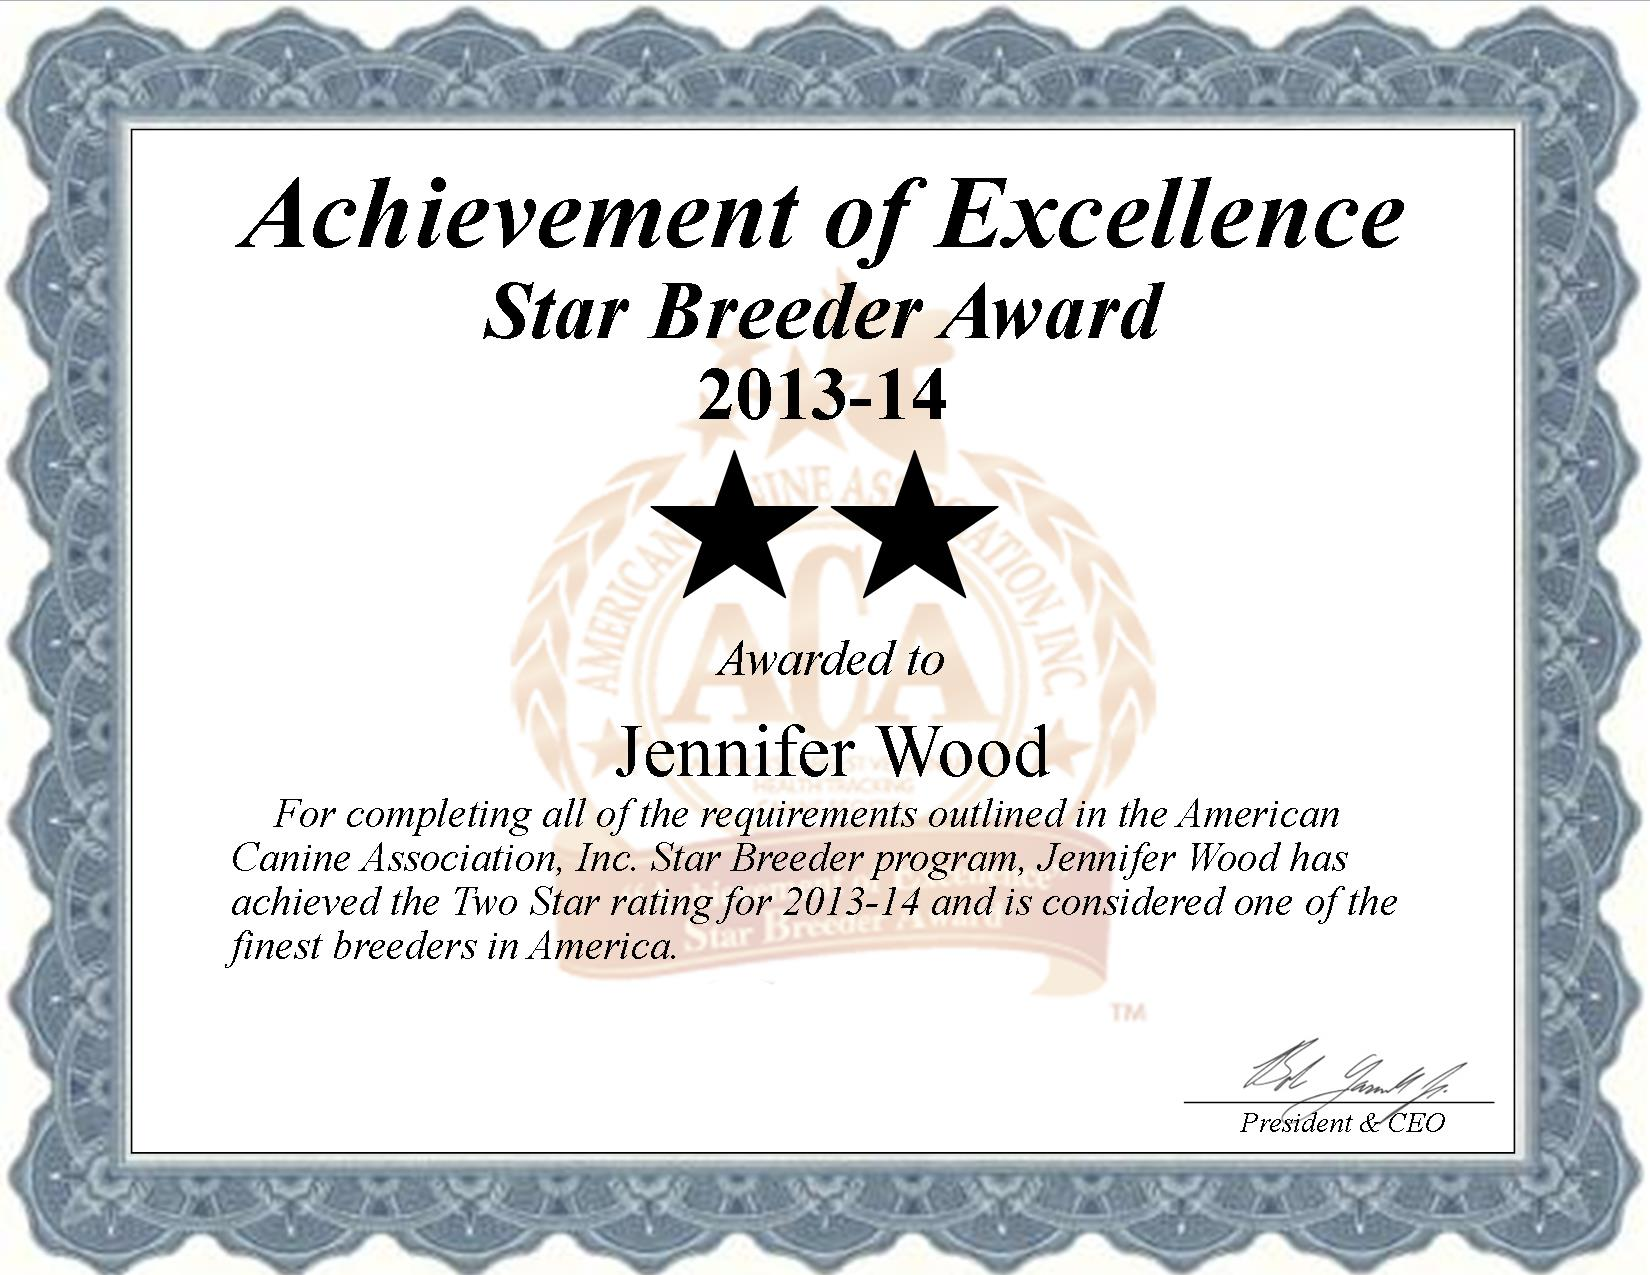 Jennifer, Wood, Jennifer Wood, Wood Kennel, breeder, star breeder, aca, star breeder, 2 star, ketchum, oklahoma, ok, dog, puppy, puppies;